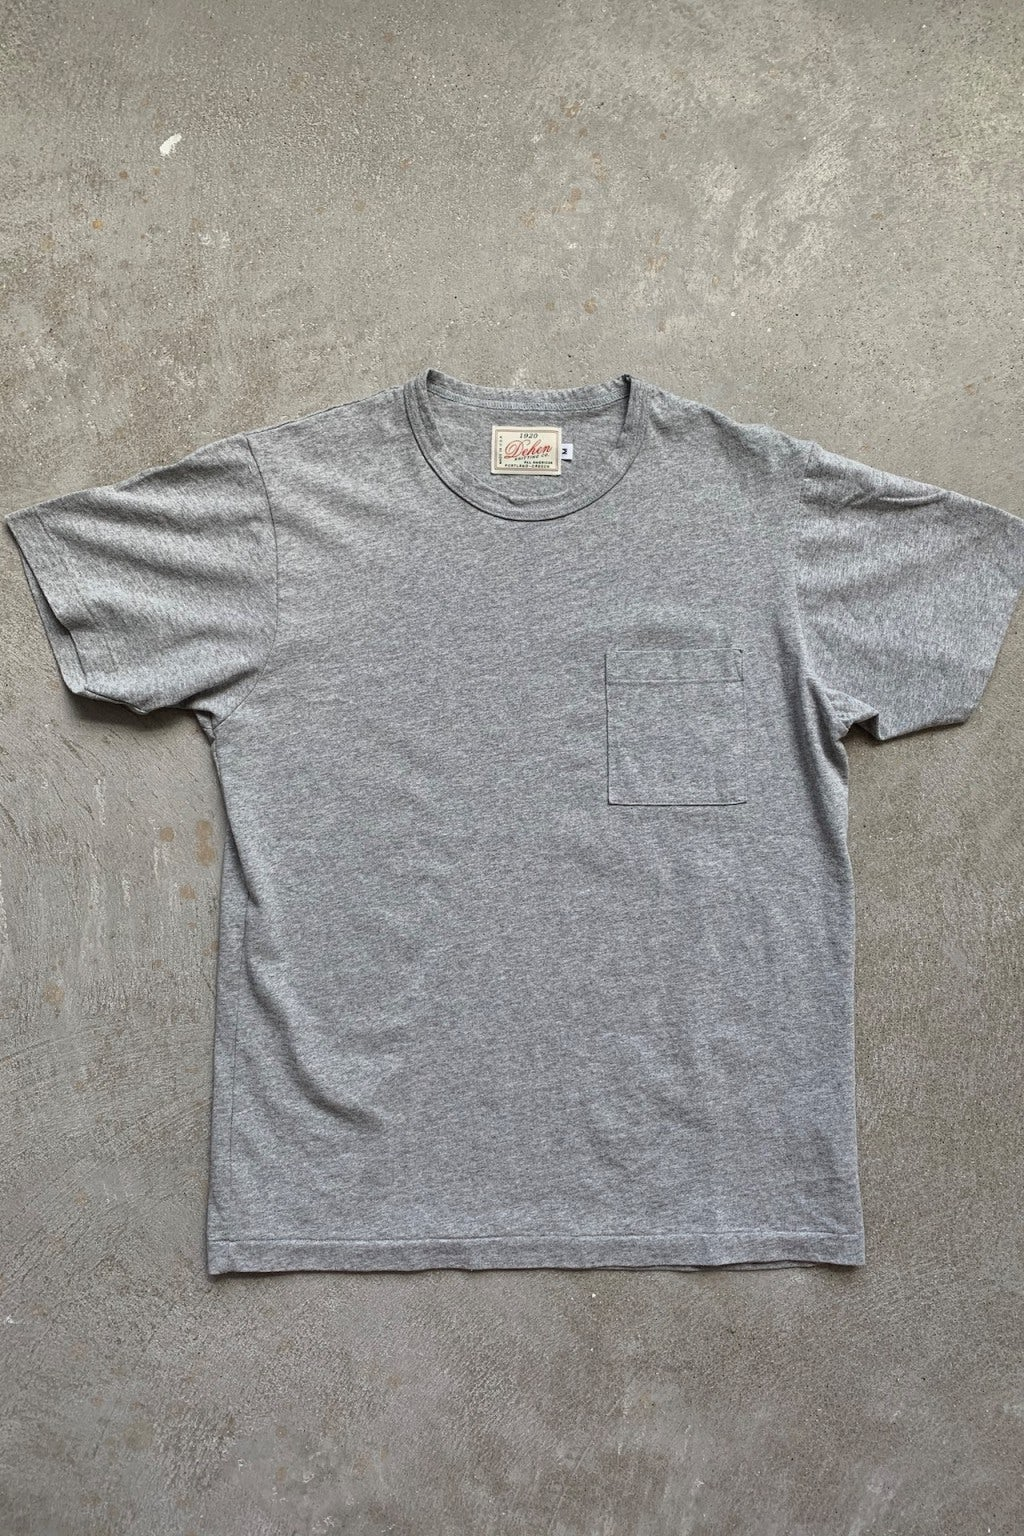 Dehen 1920 Heavy Duty Tee - Single Pocket Heather Gray